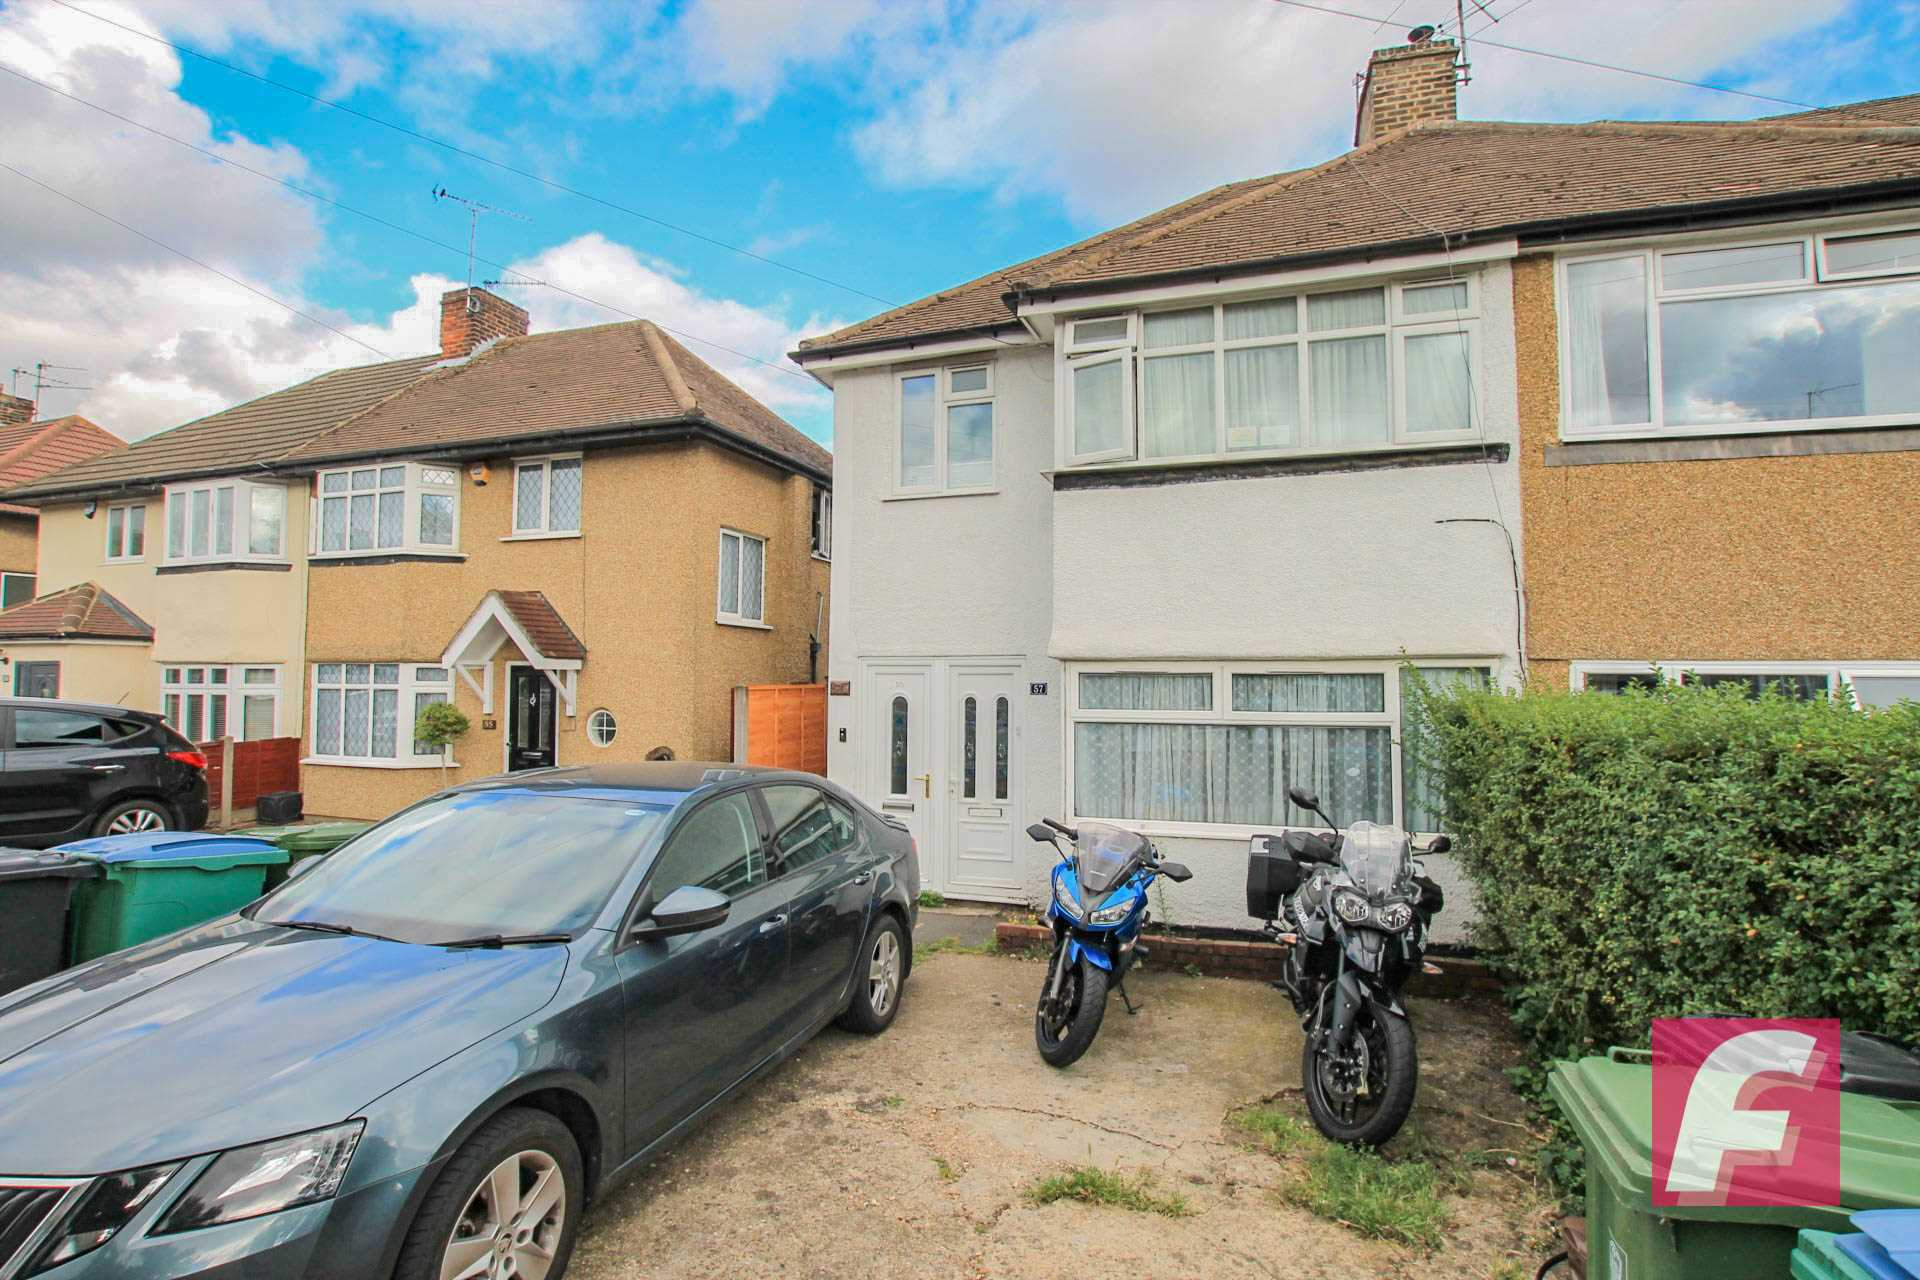 Devon Road, Watford, WD24